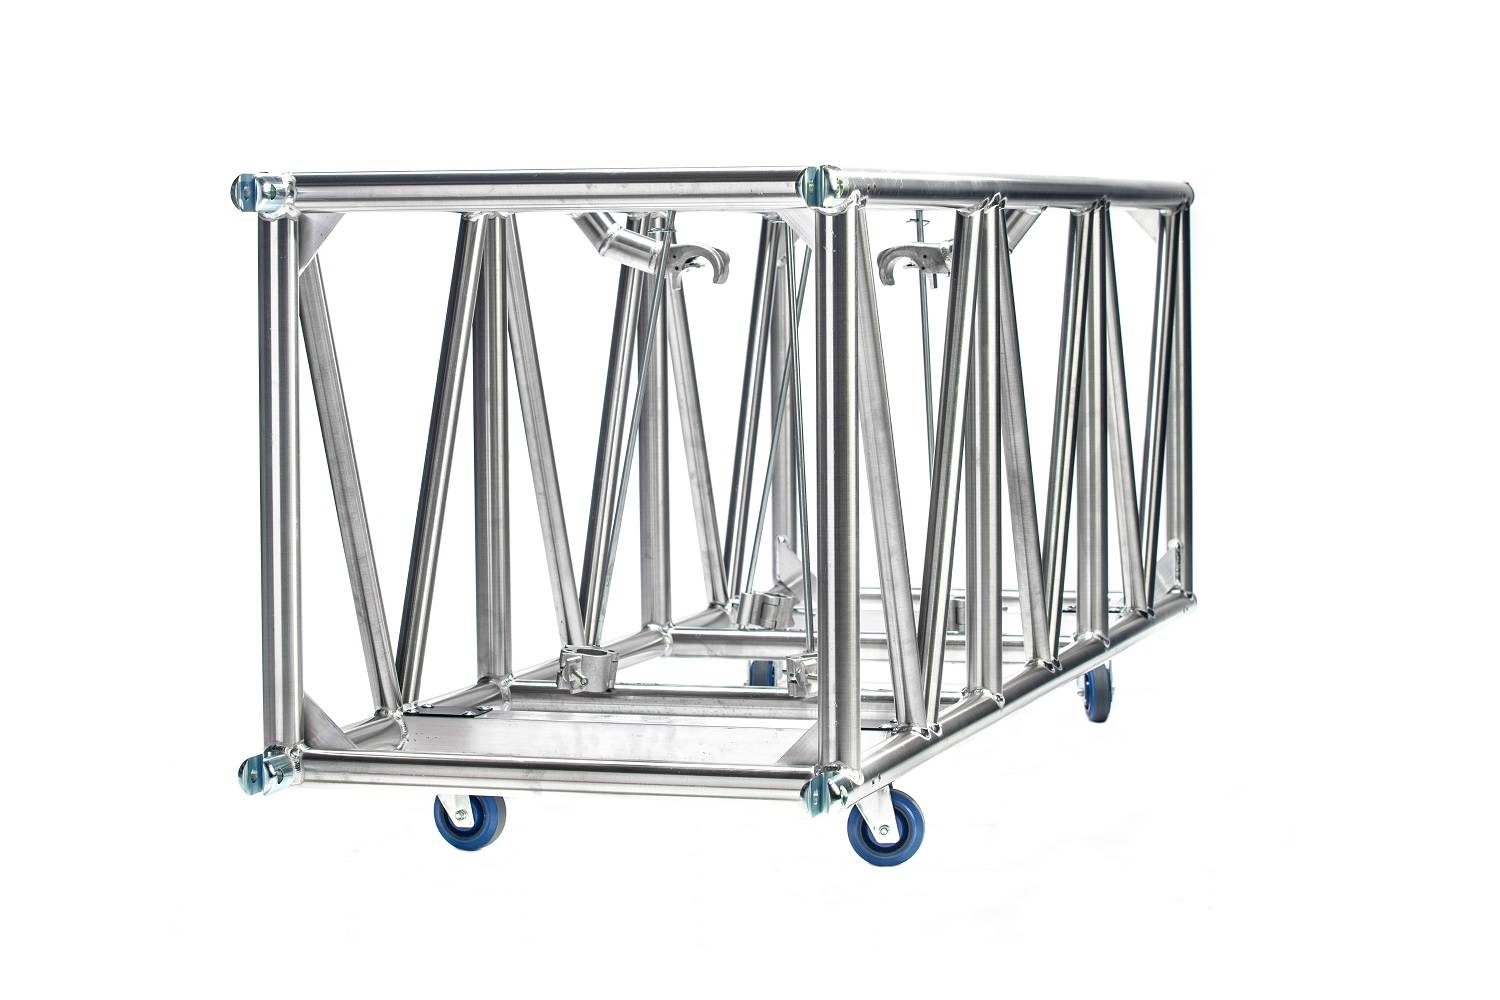 Heavy duty pre-rig truss 30 x 30 spigoted